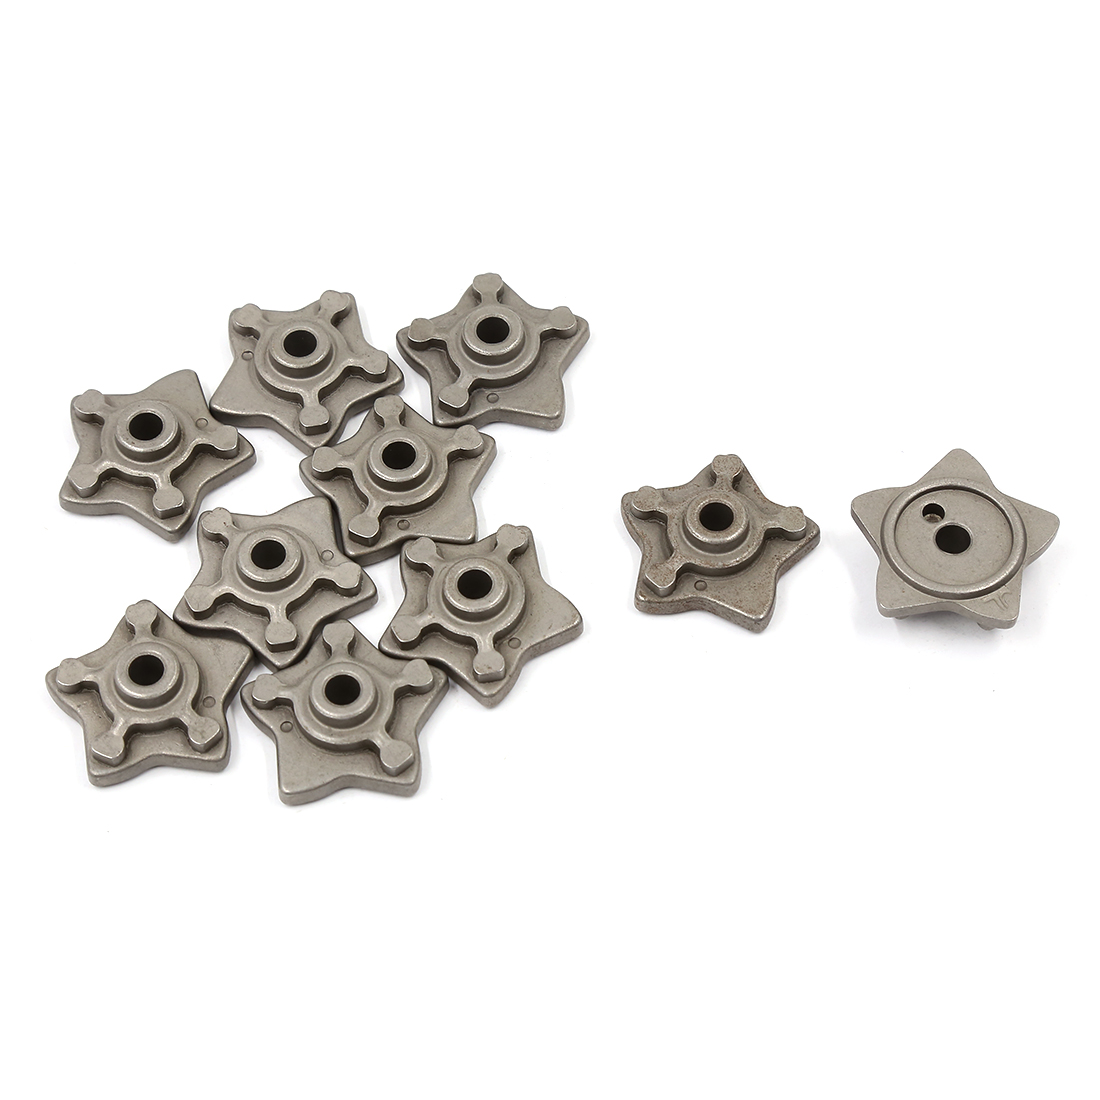 10 Pcs Four Angle Star Shape Engine Speed Gear Shift Cam for XF125 Motorcycle